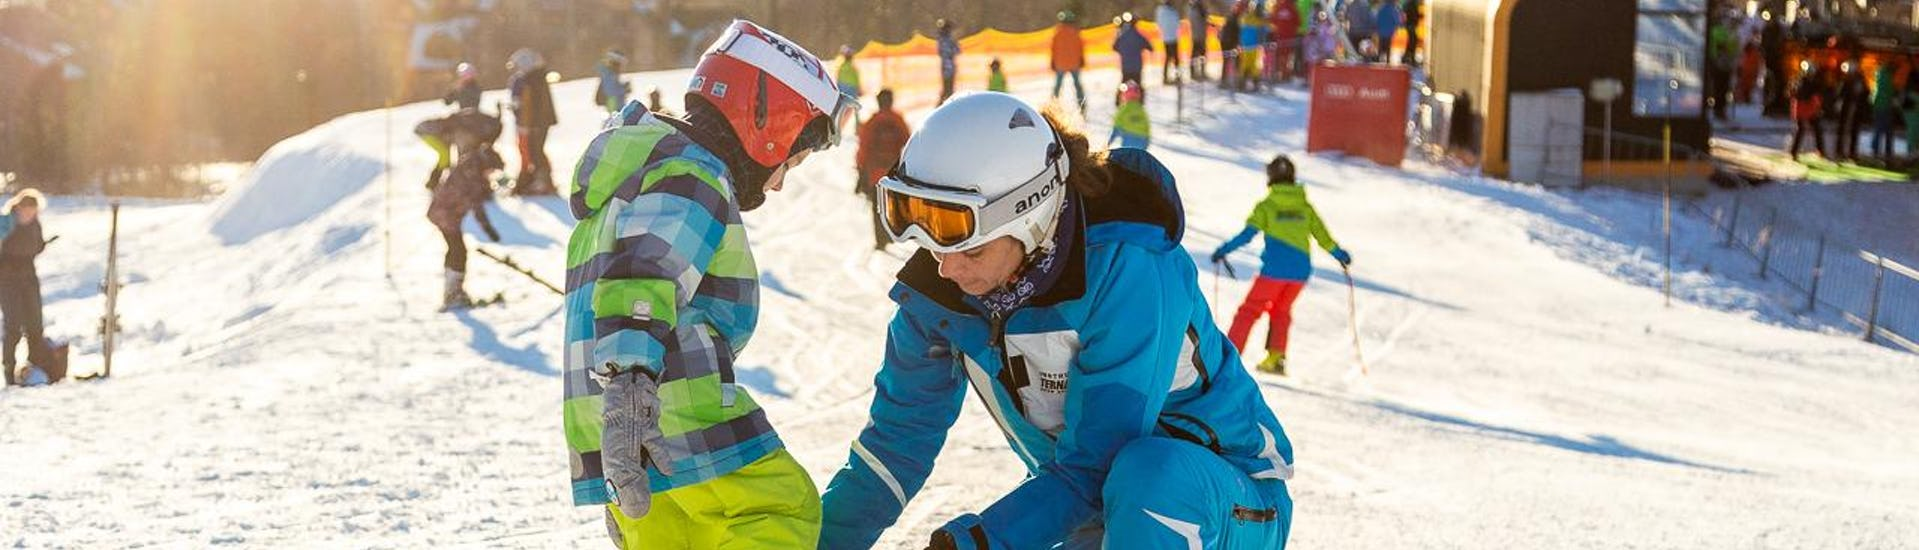 Under the supervision of an experienced ski instructor from the ski school Ternavski Snow Academy Tatranska Lomnica, a small child is getting ready for his first steps during the course Ski Instructor Private for Kids (from 4 years).